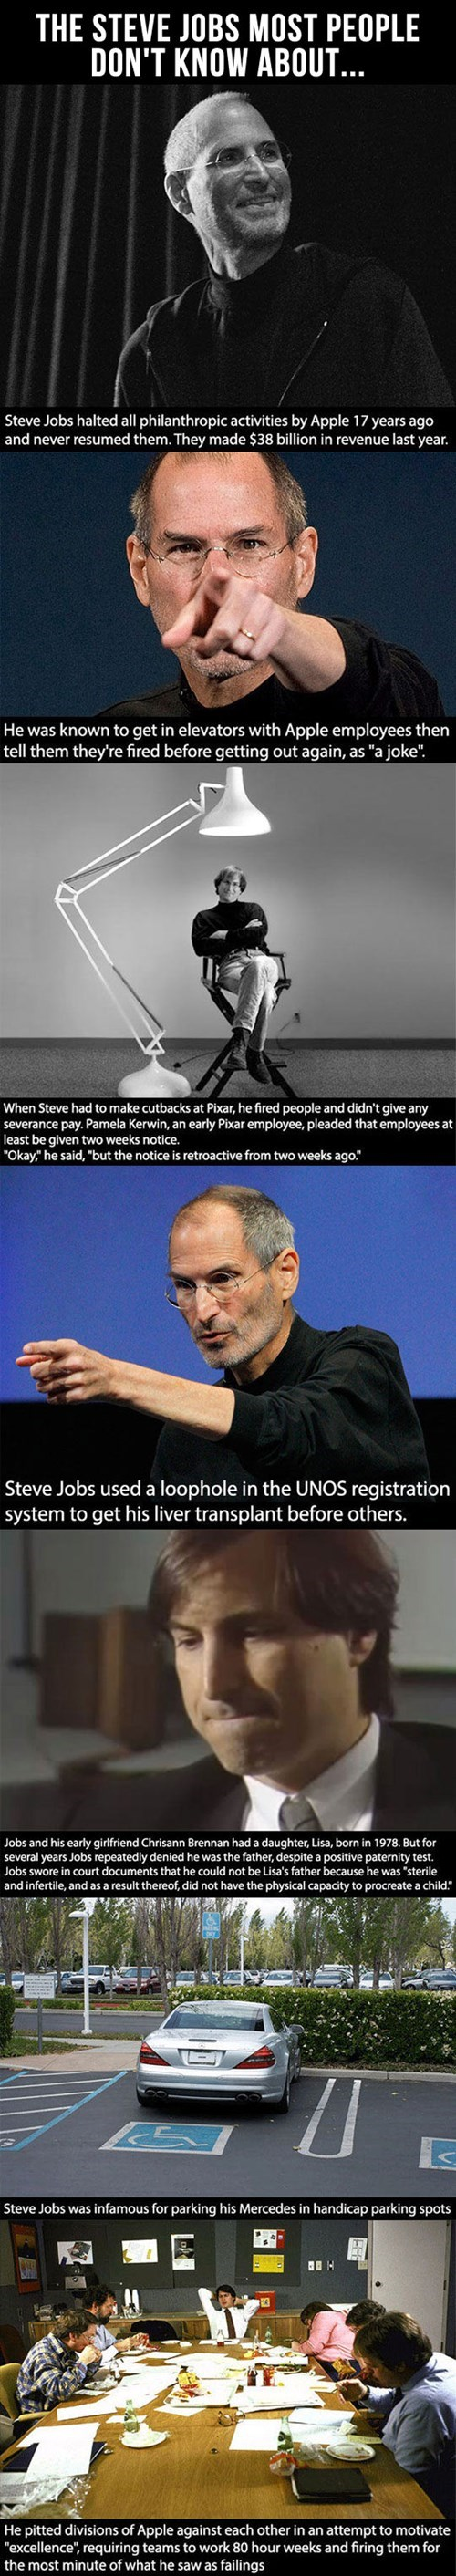 apple,steve jobs